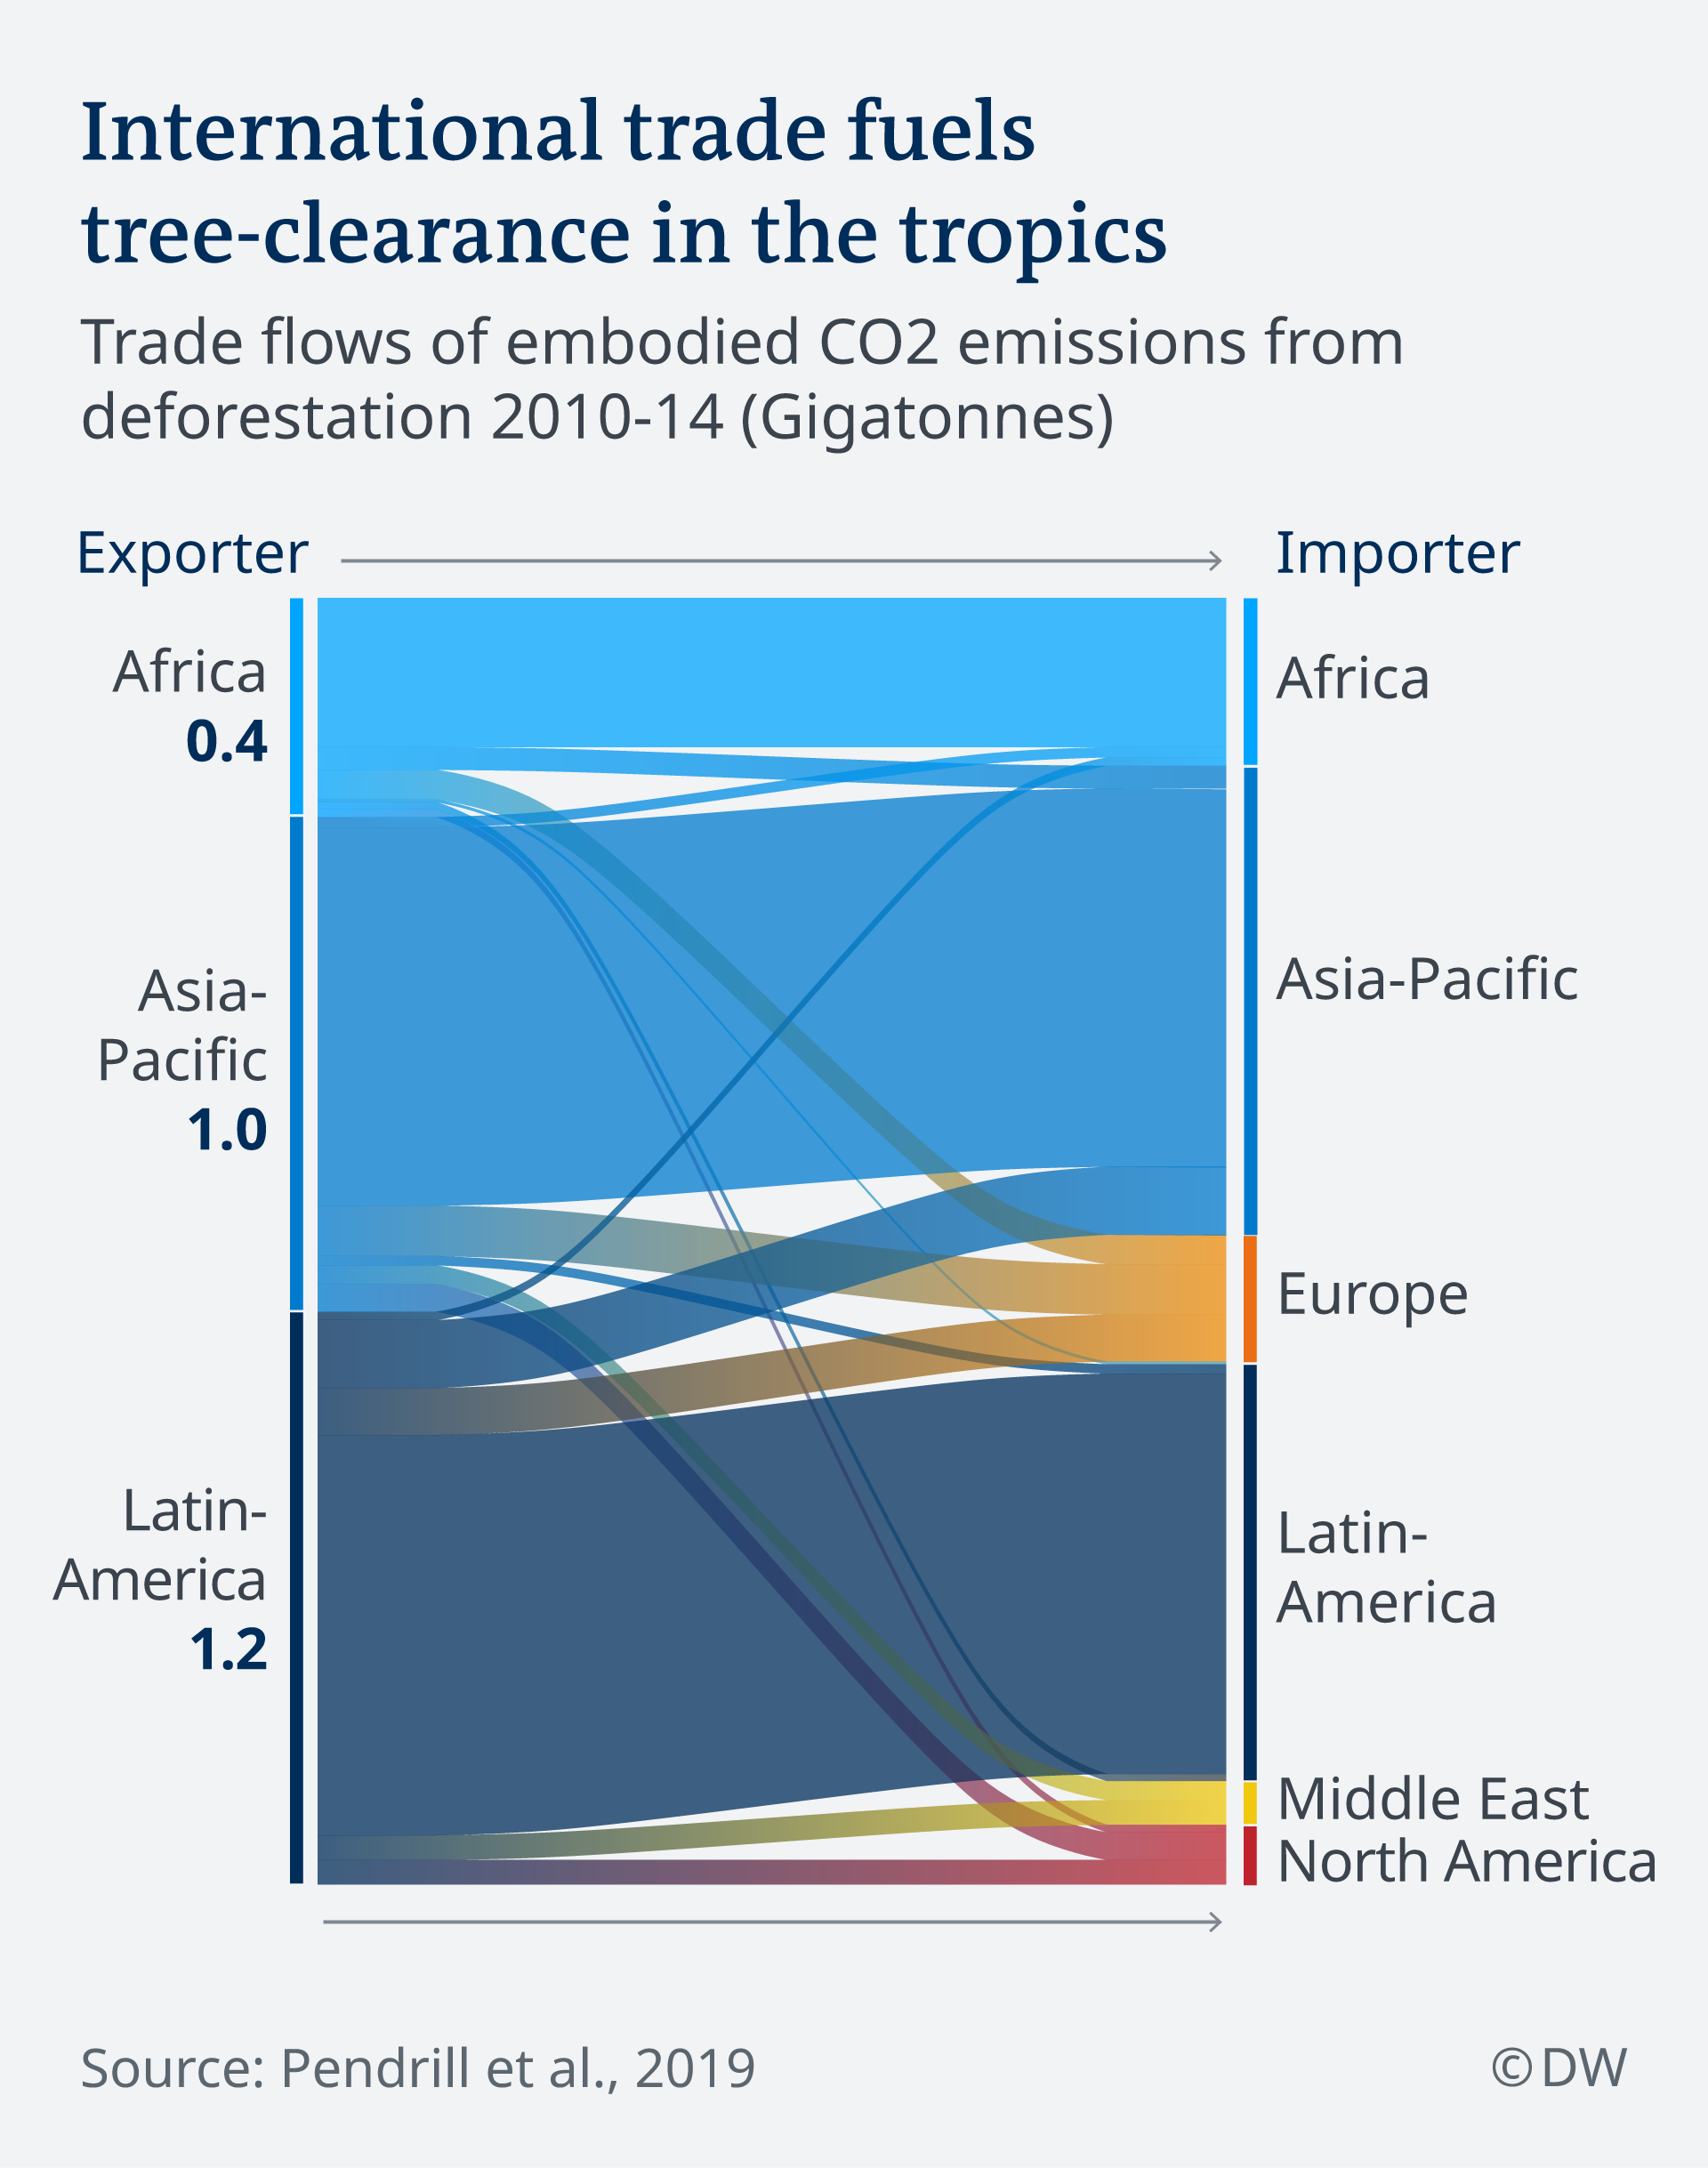 Data visualization: trade flows of CO2 from deforestation embodied in products